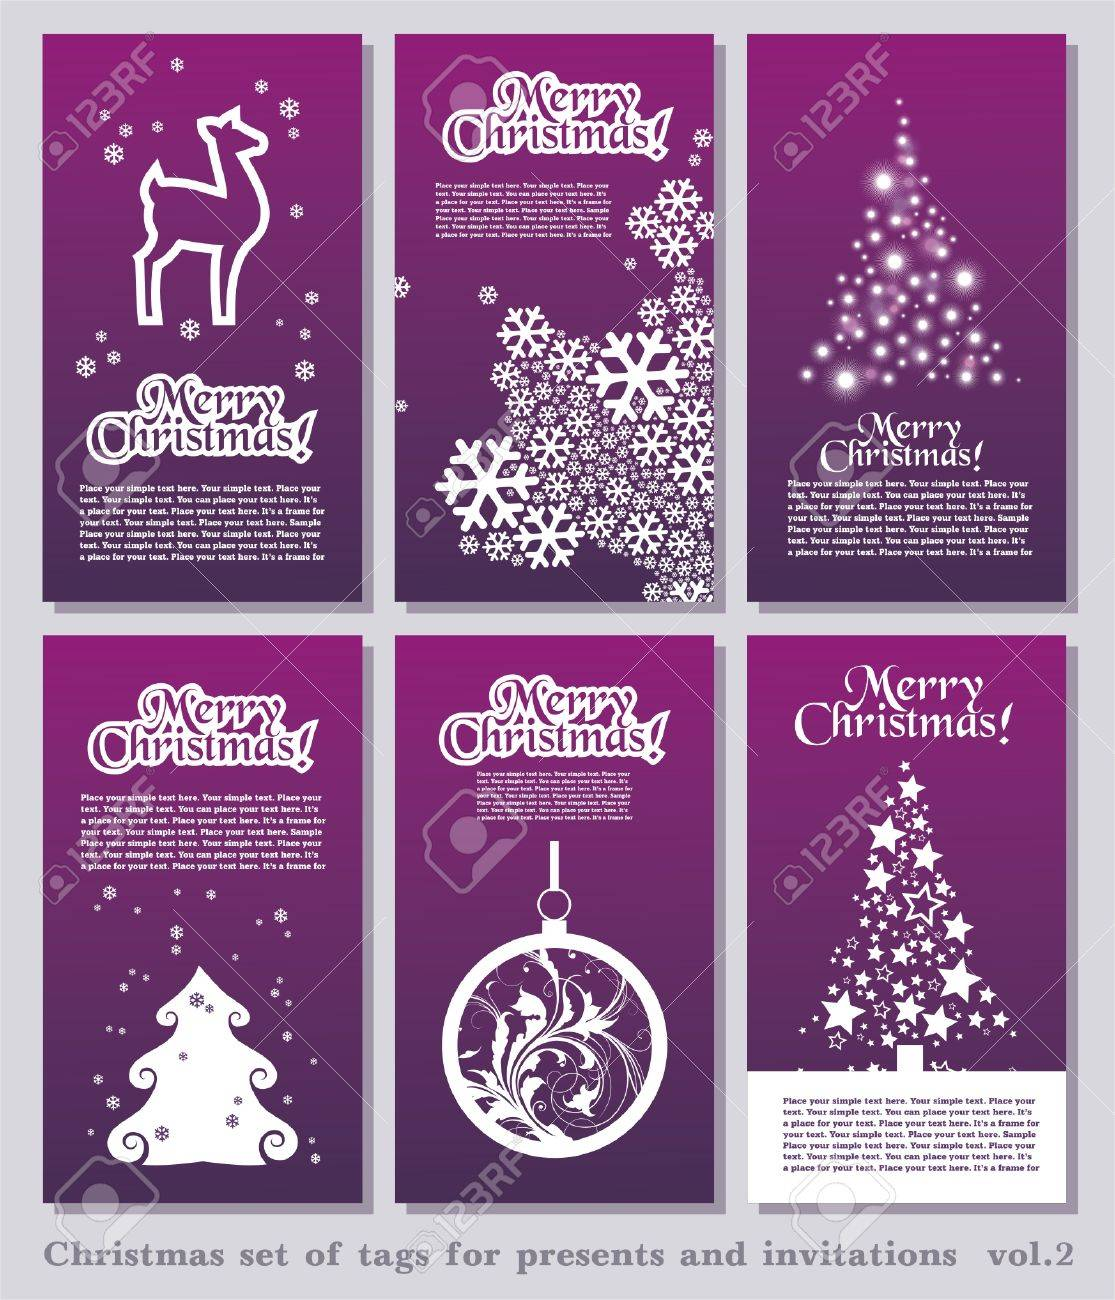 Set of Christmas minimal simple tags with decorative Christmas elements and space for your text. Stock Vector - 5992255